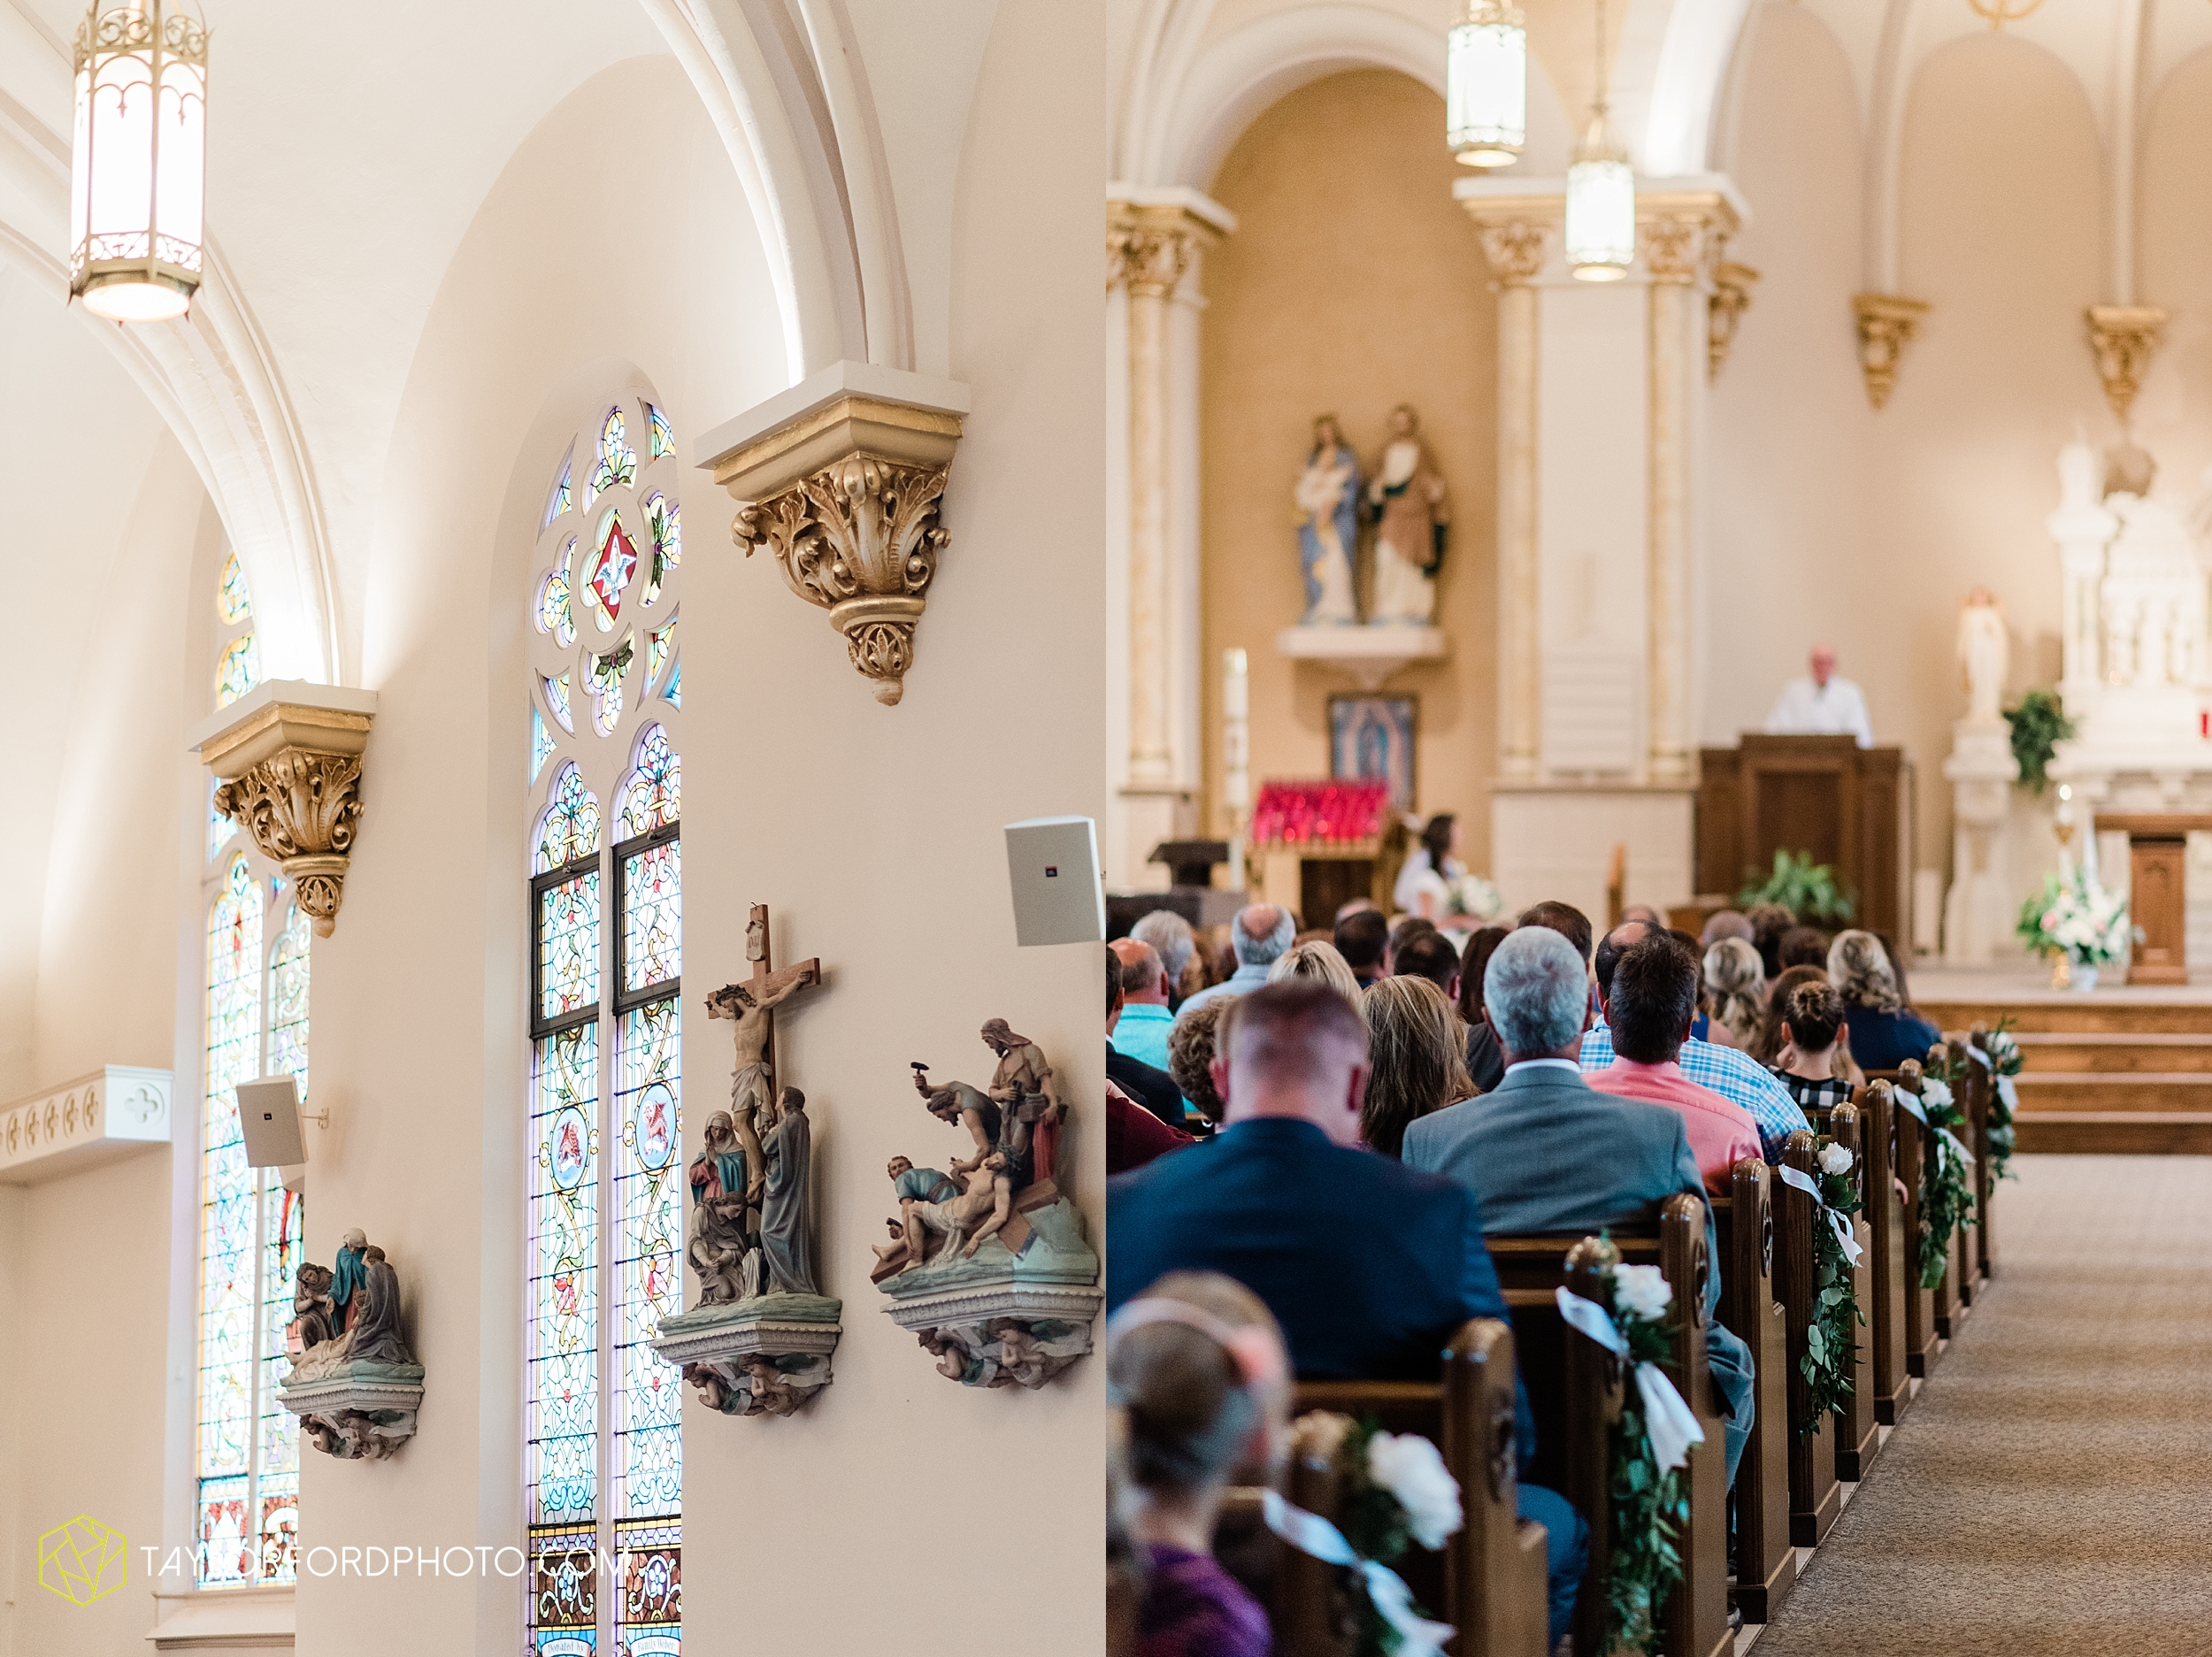 kacee-haden-sholl-second-story-saint-marys-knights-of-columbus-defiance-ohio-wedding-photographer-taylor-ford-photography_0152.jpg